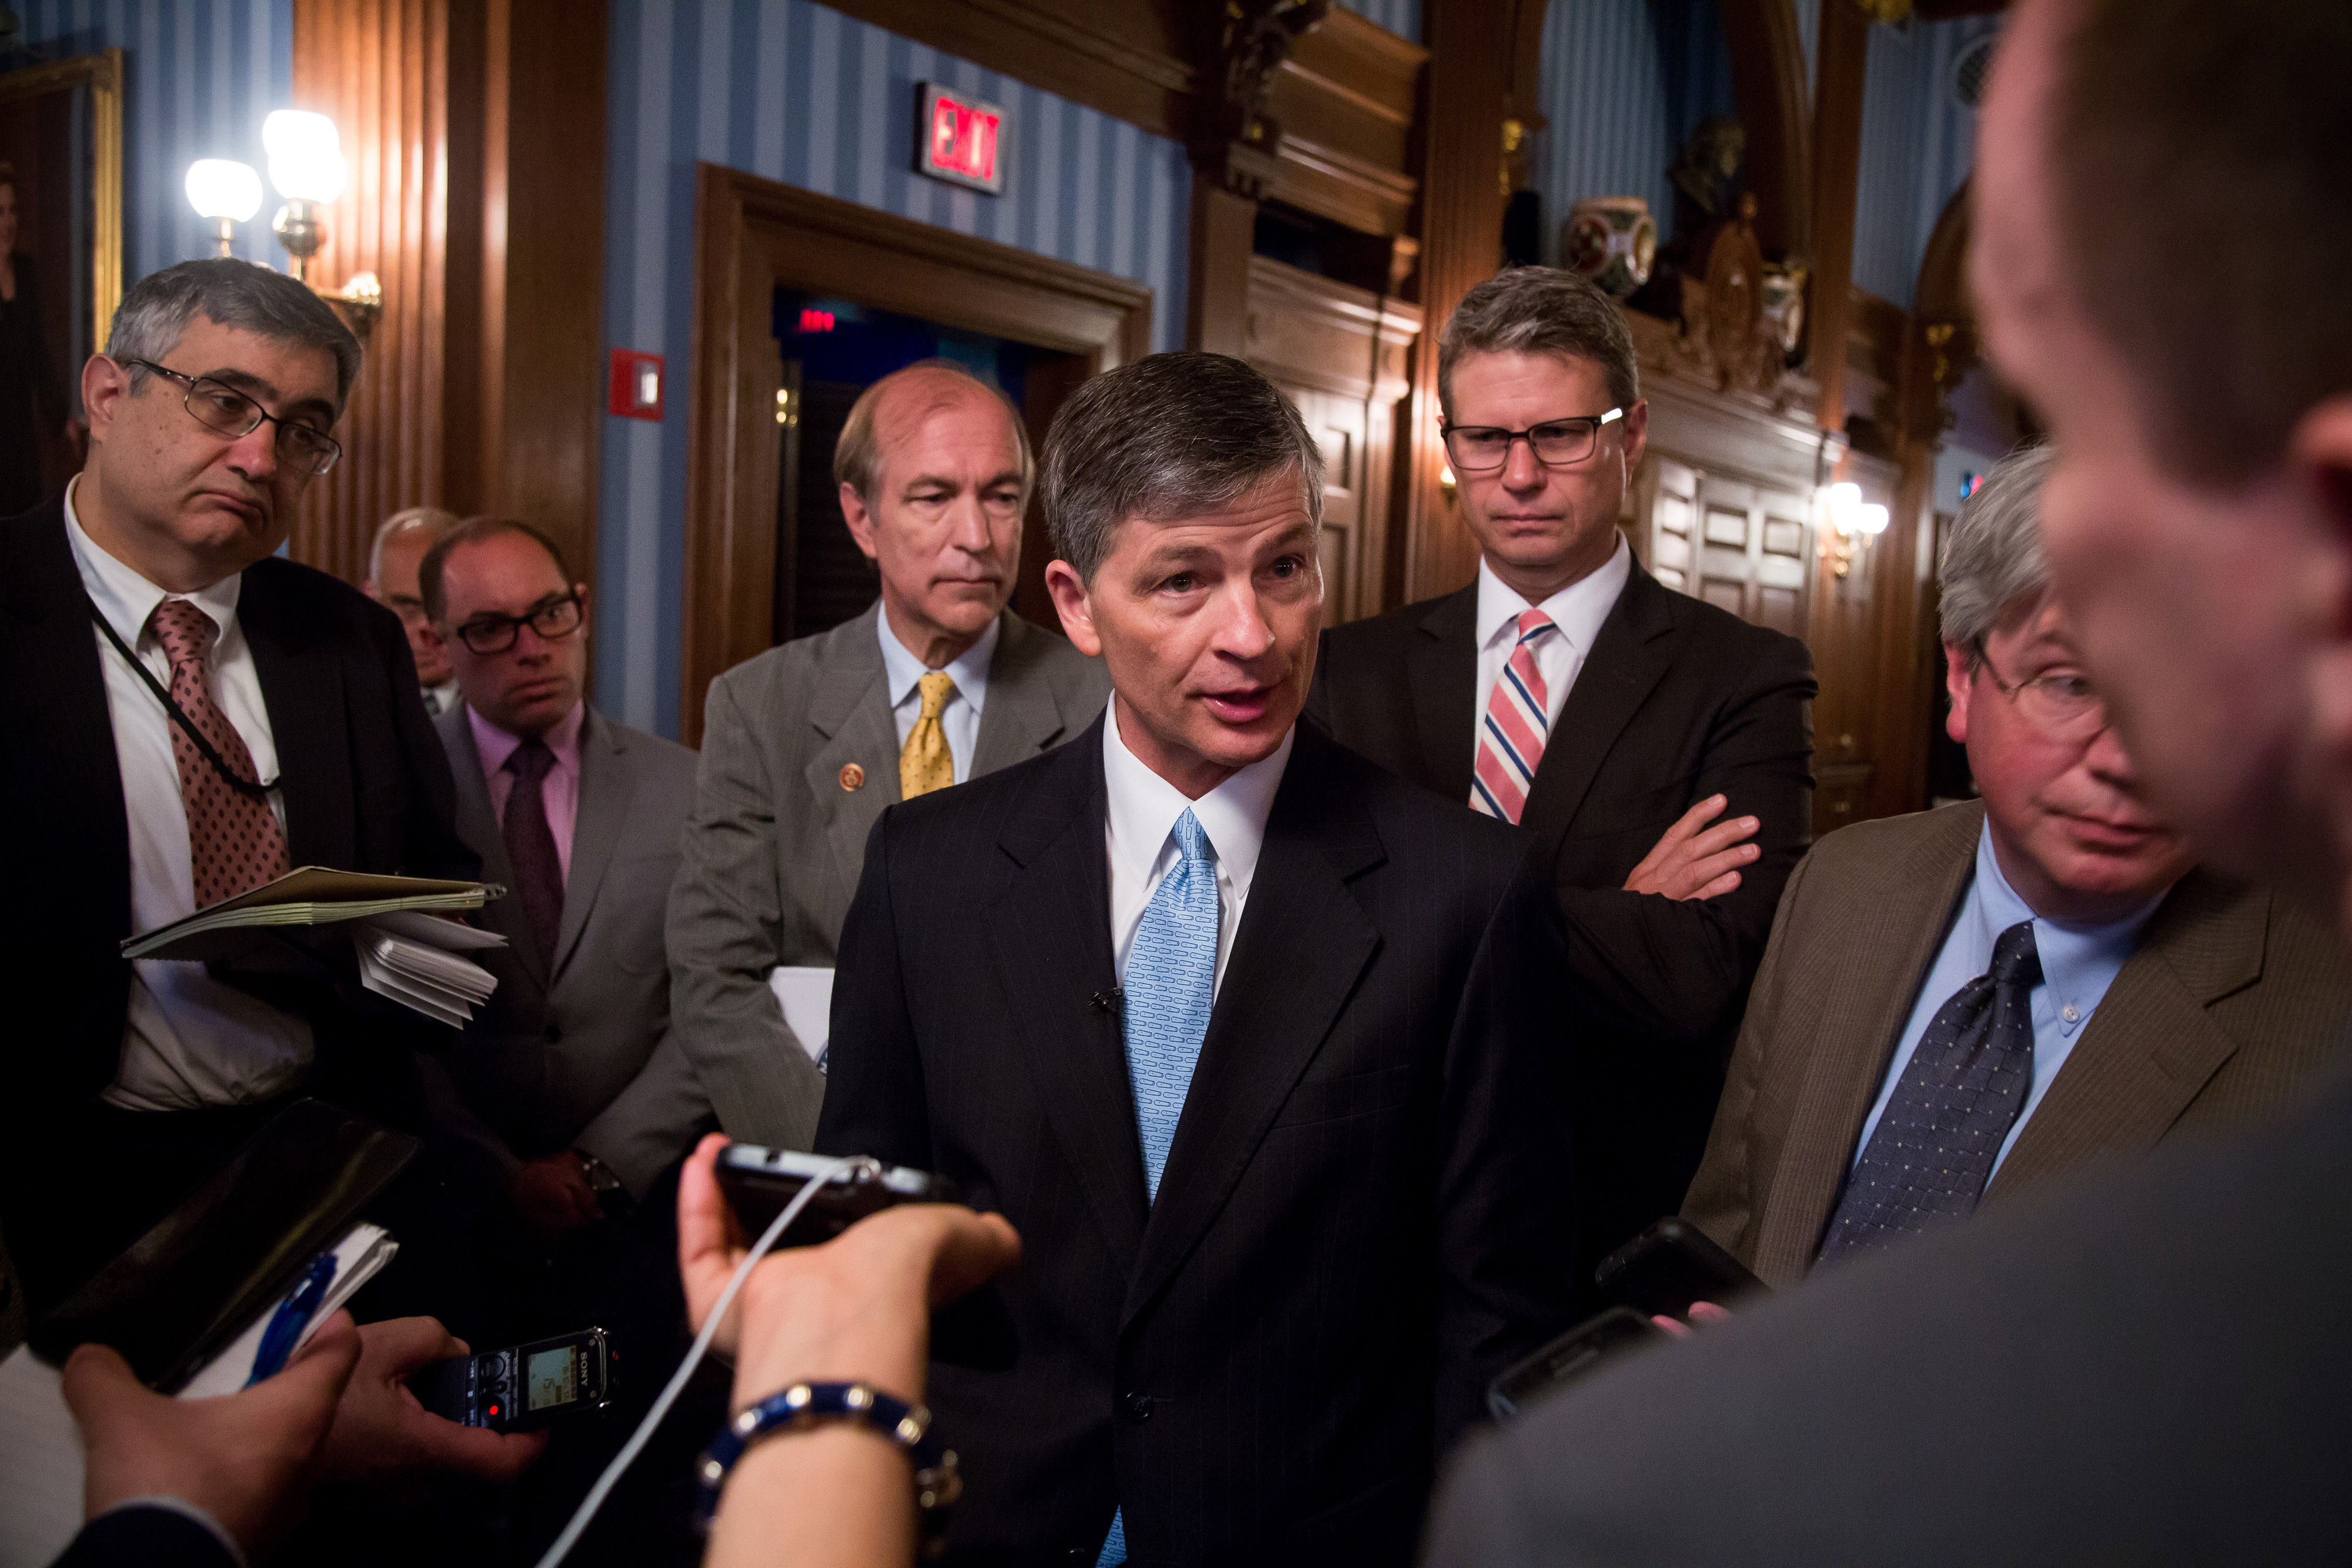 U.S. Representative And Chairman Of The Financial Services Committee Jeb Hensarling Speaks At The Economic Club of New York